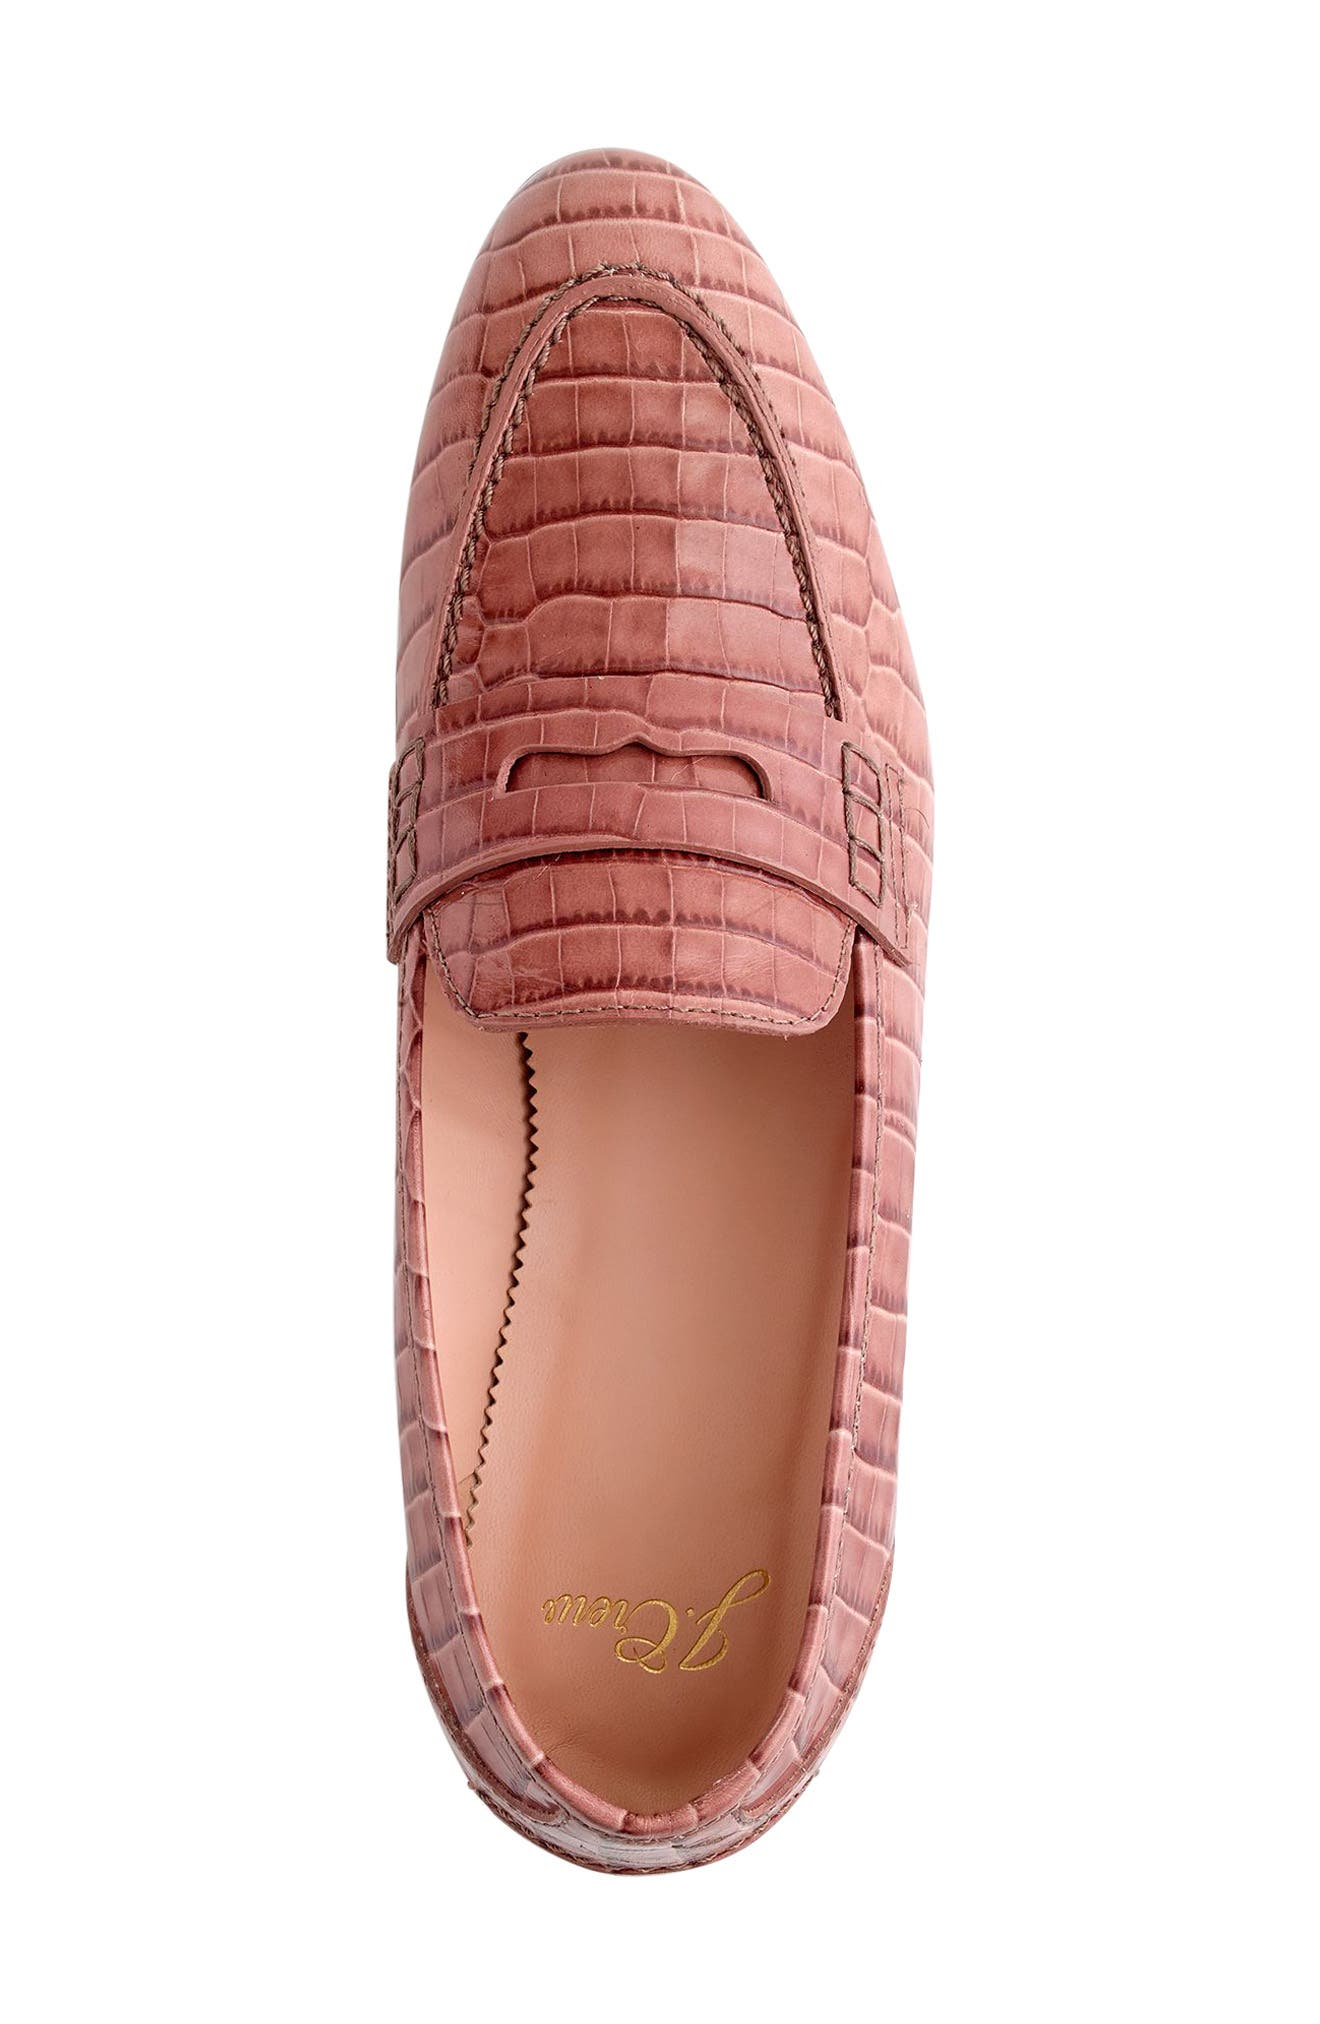 Academy Penny Loafer,                             Alternate thumbnail 3, color,                             JASMINE FROST